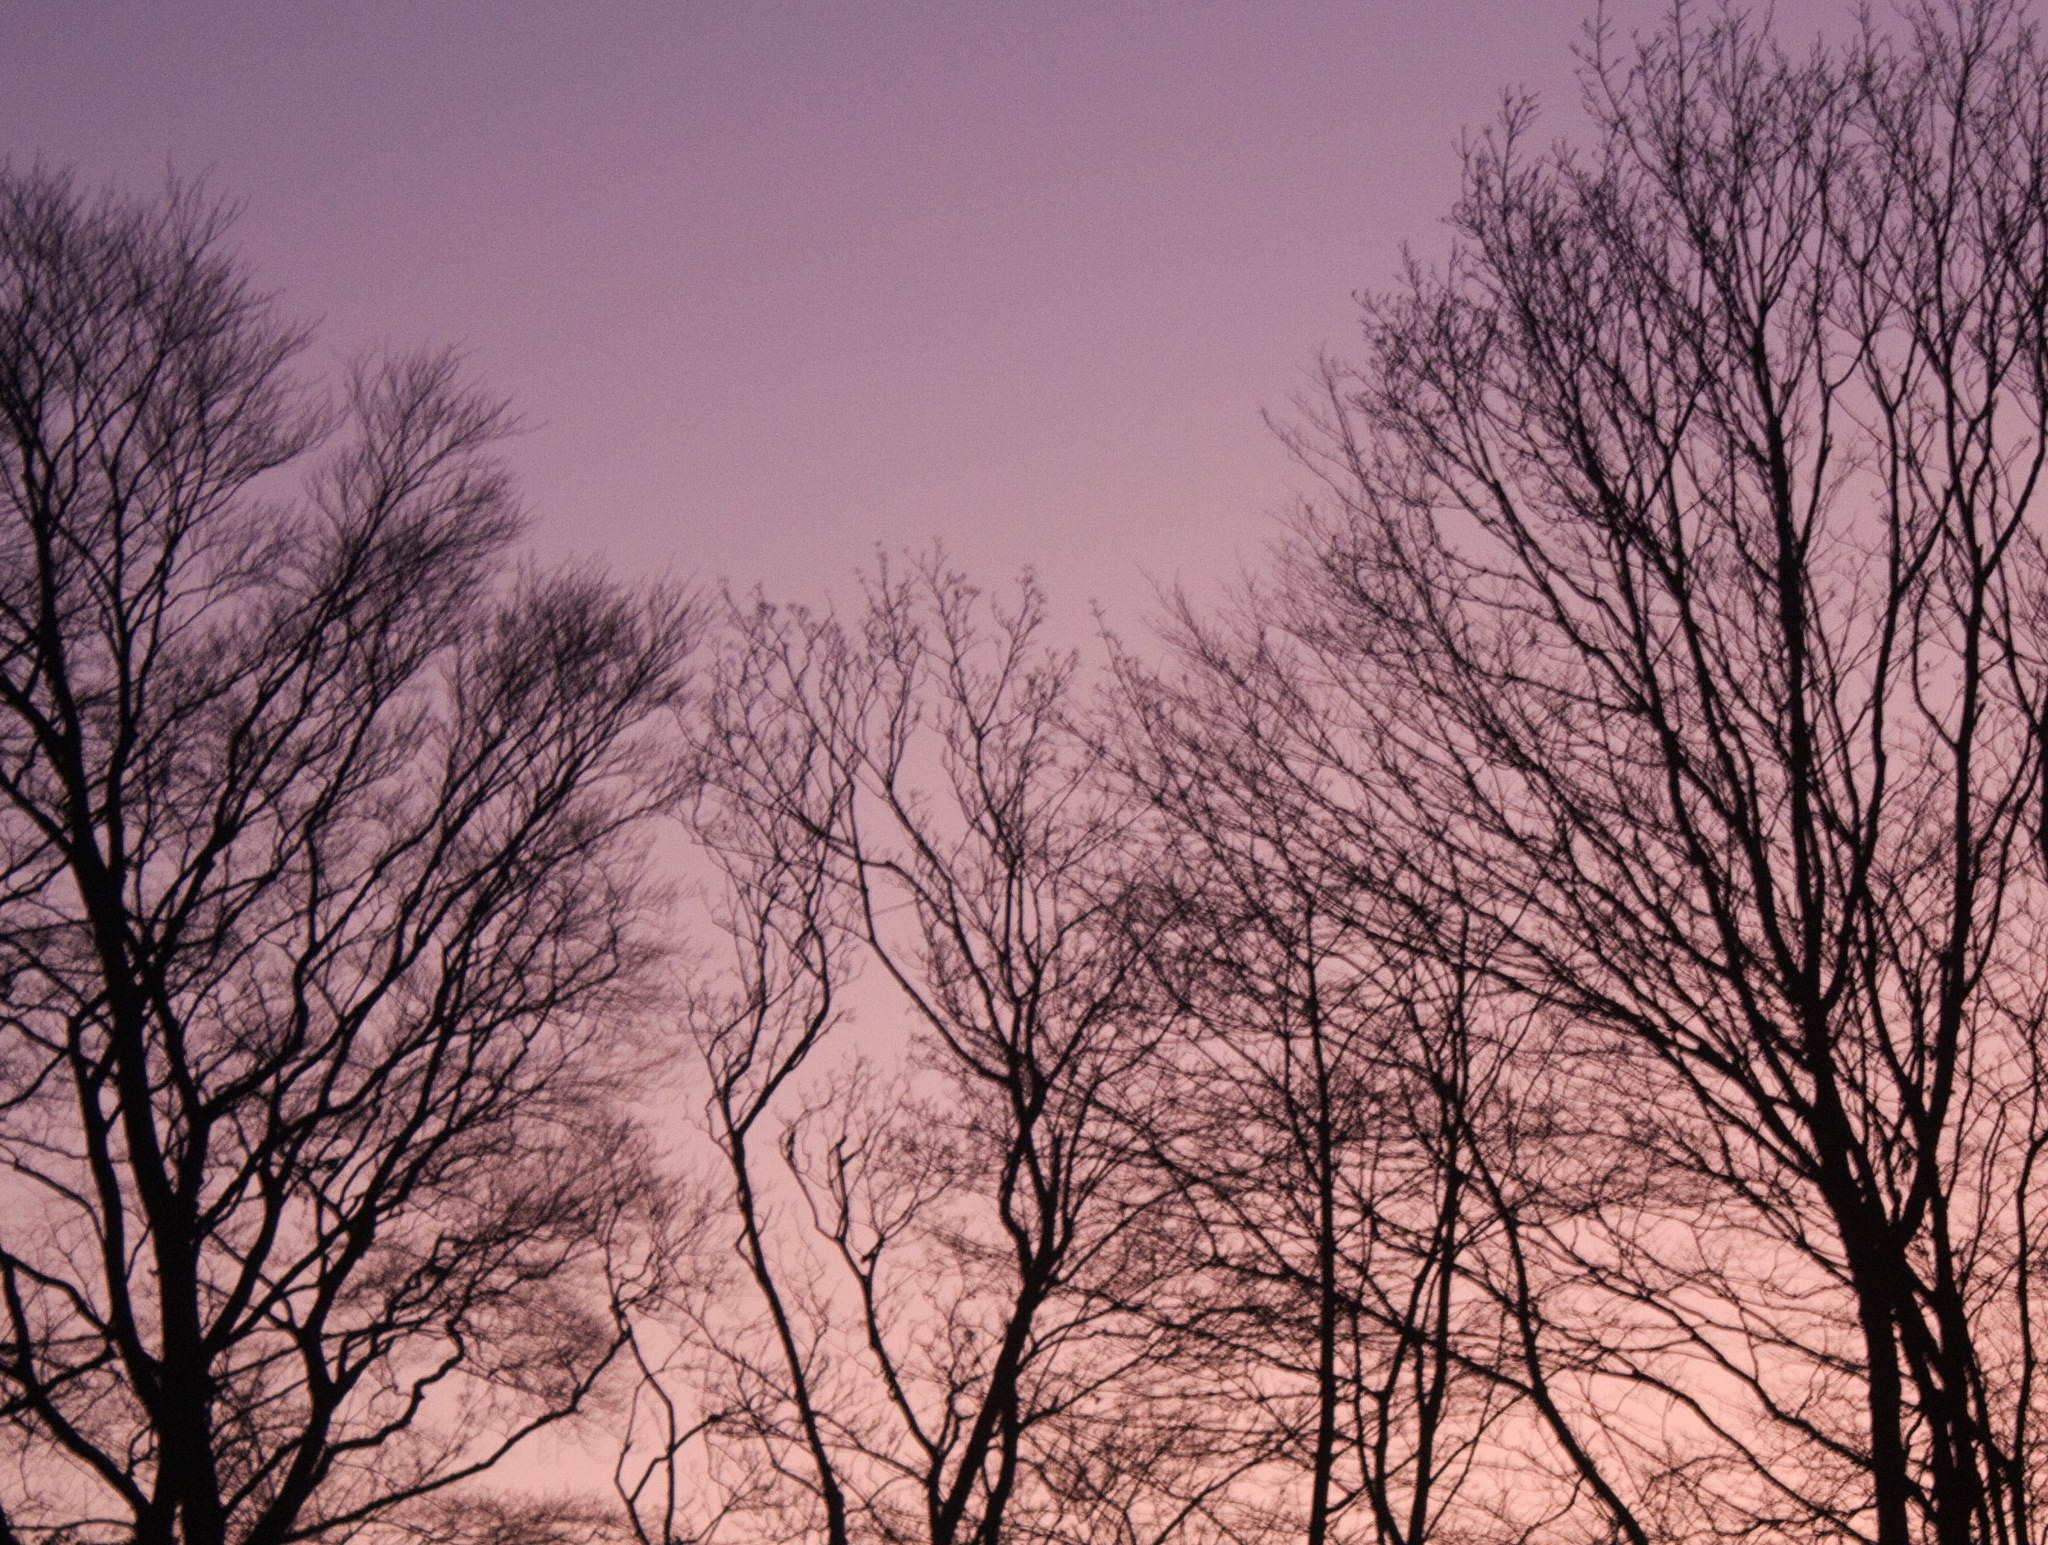 Trees at Sunset by martin.davis.5243817